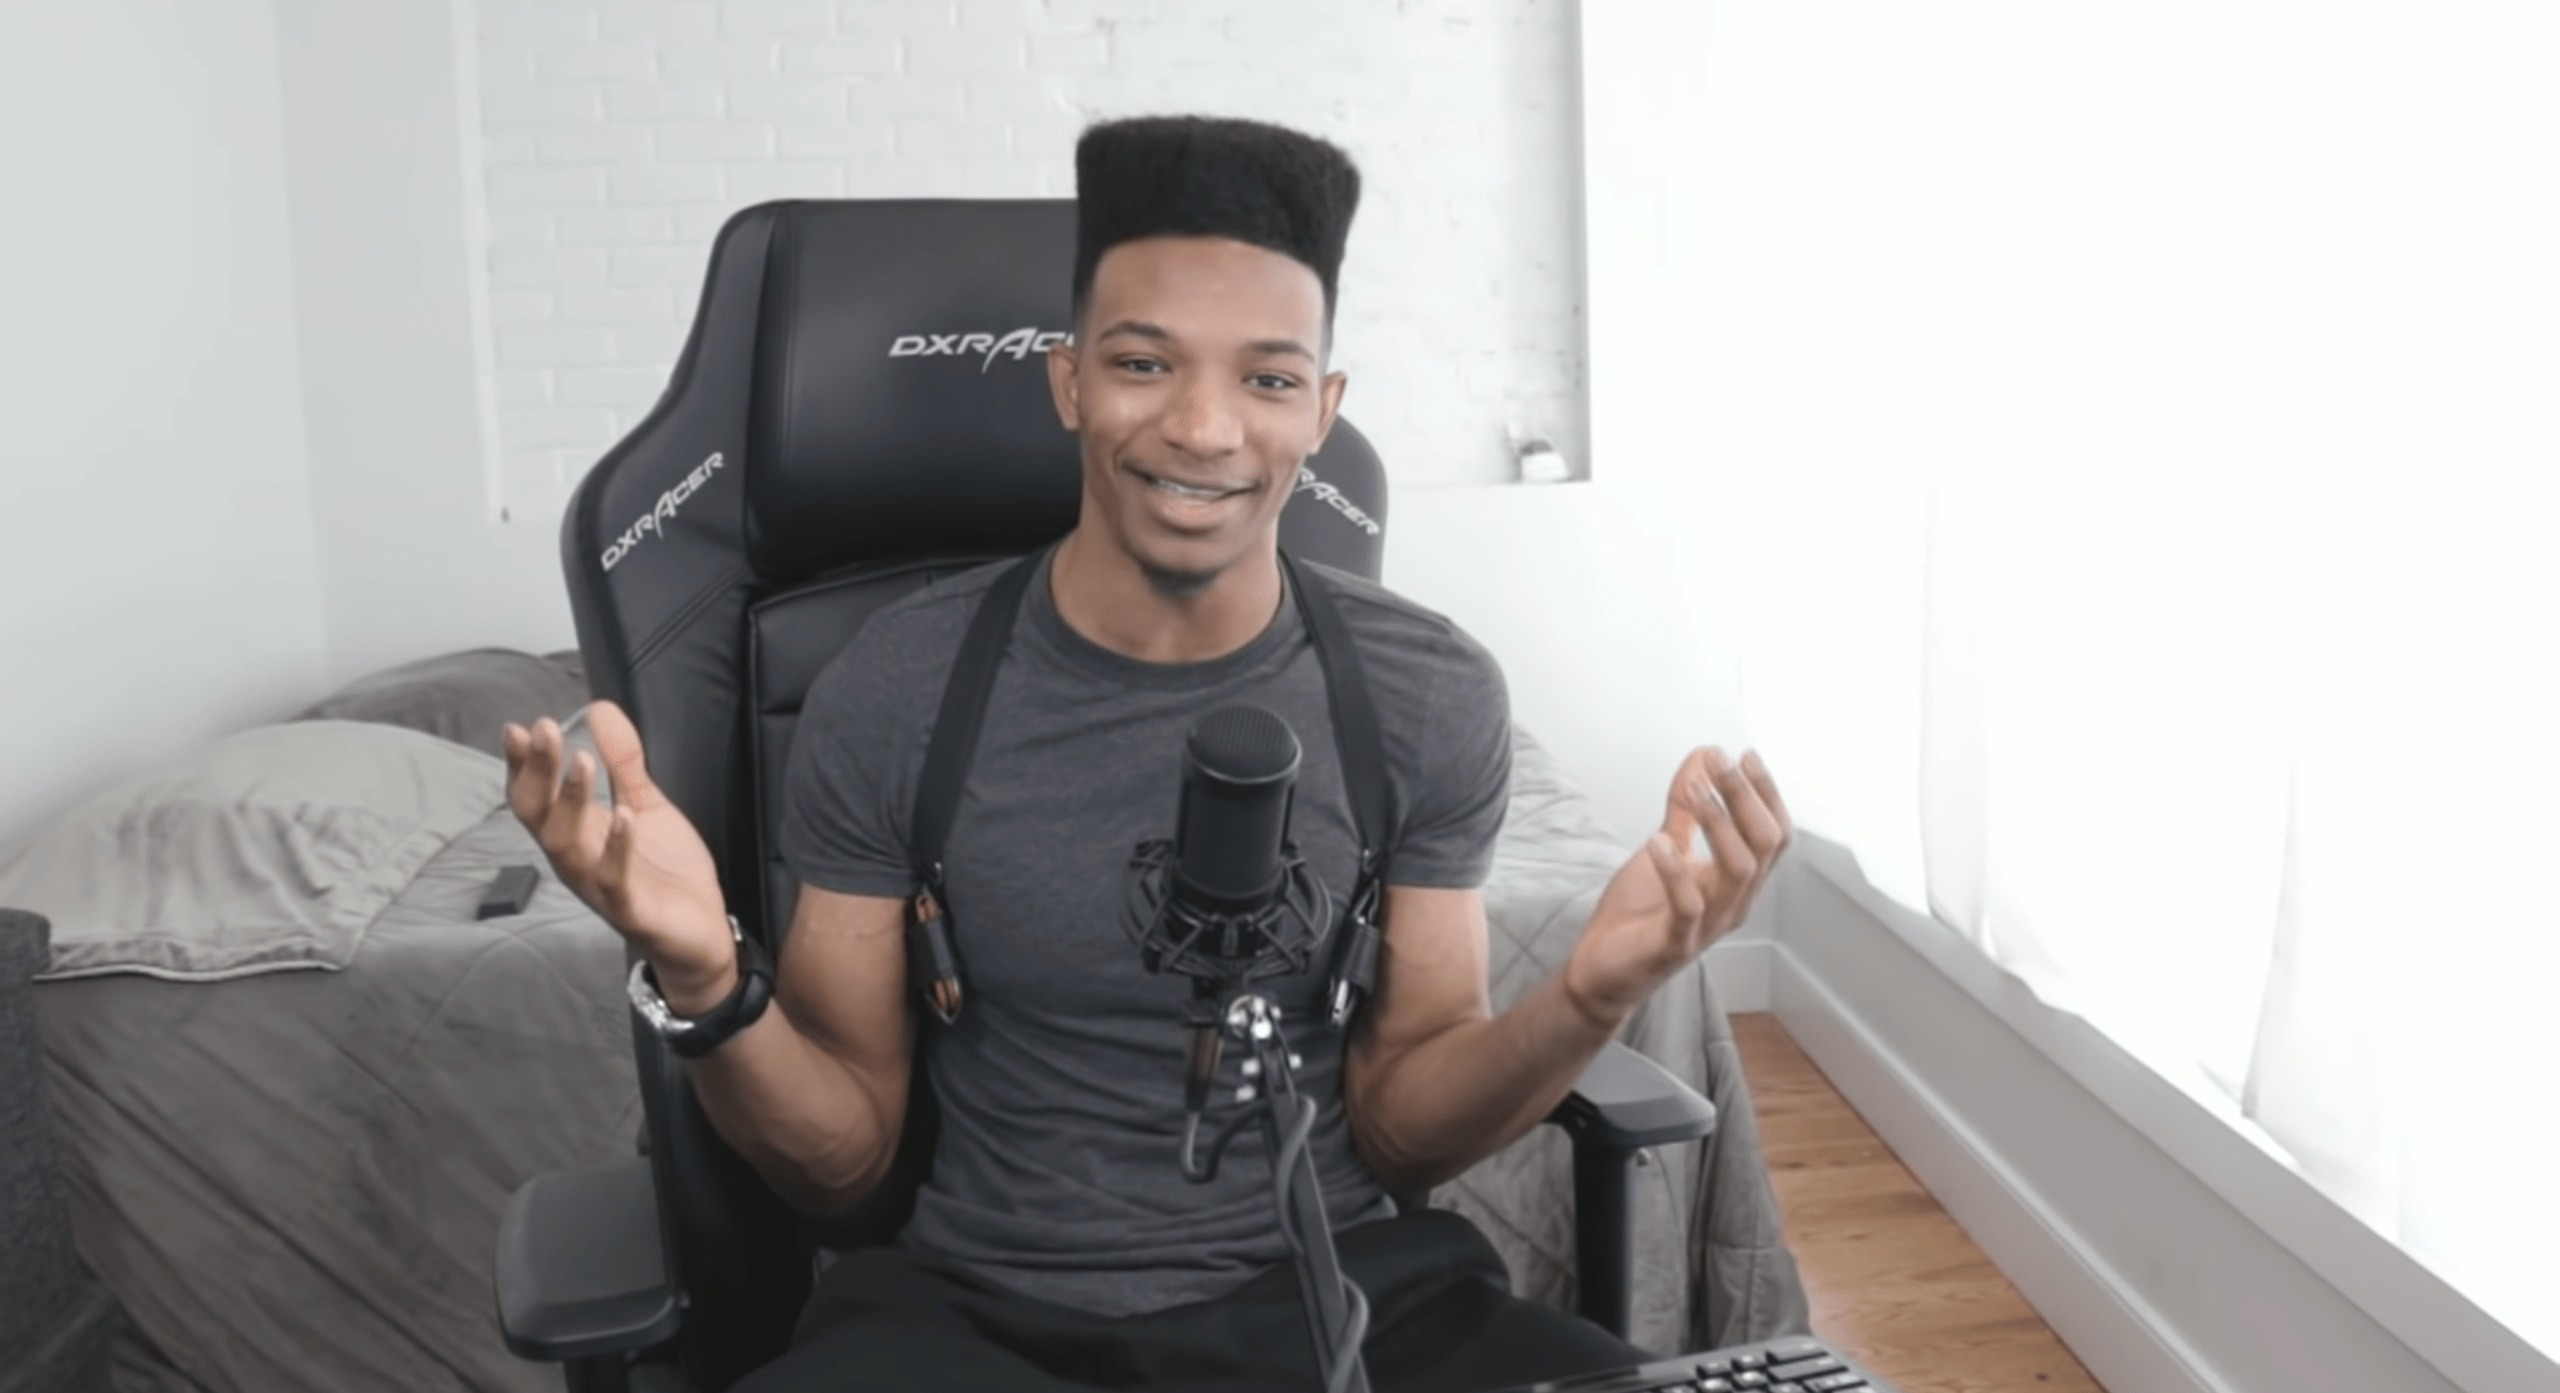 Etika, The famous YouTube star died at the young age of 29